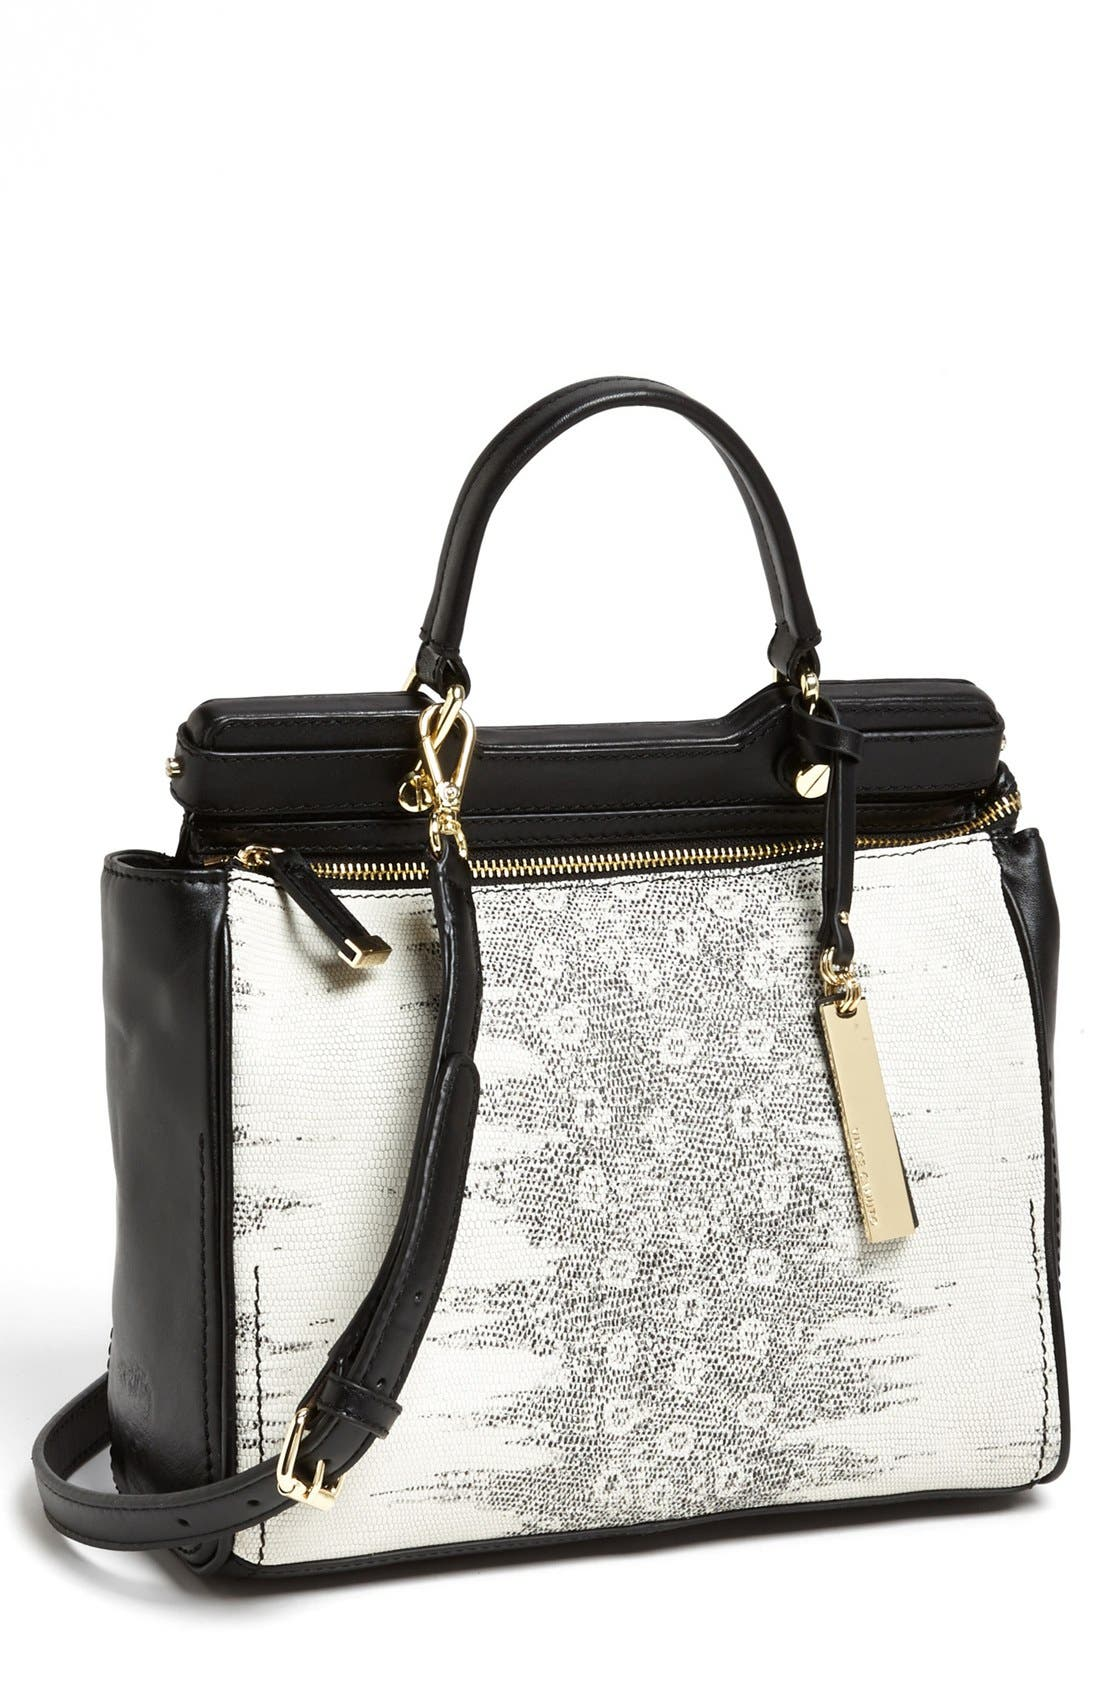 Main Image - Vince Camuto 'Fiona - Small' Crossbody Bag